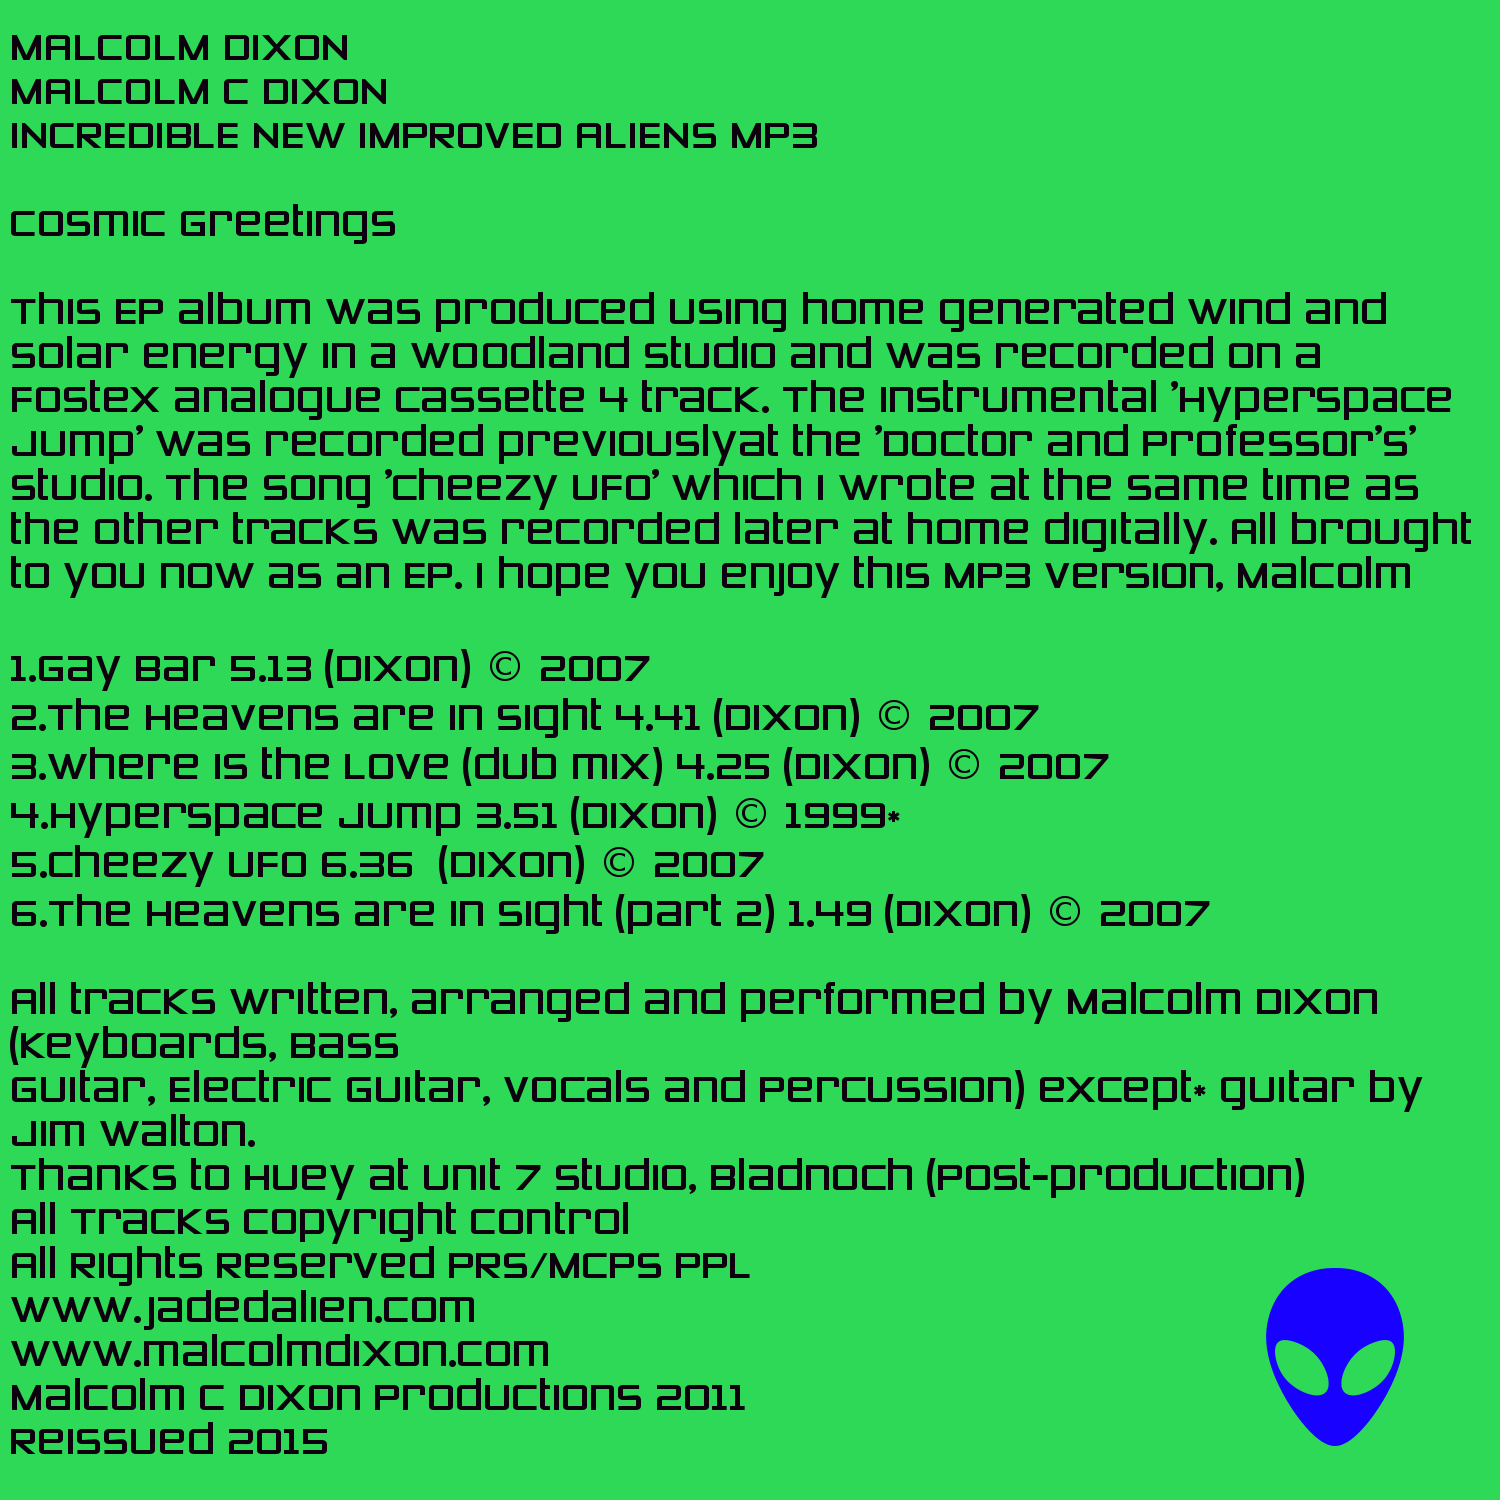 Malcolm Dixon Music; Album Information